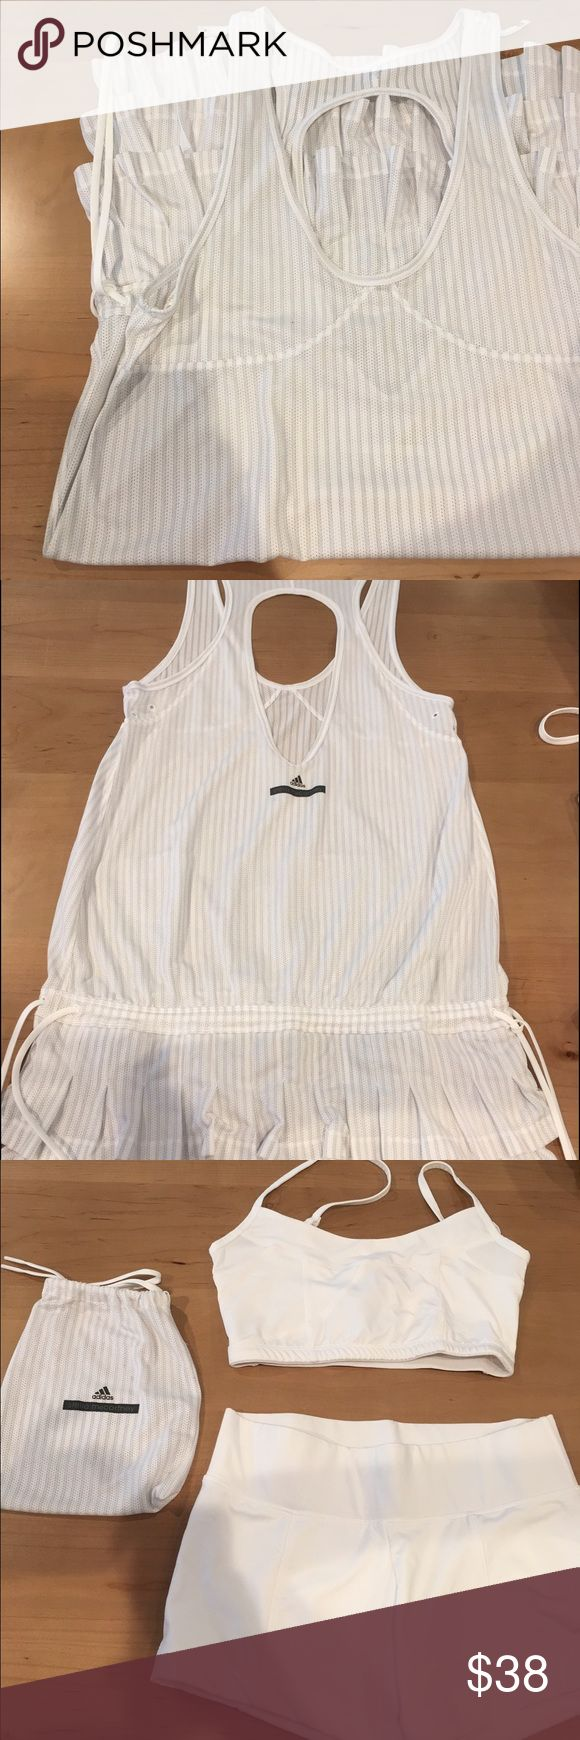 Stella McCartney / Adidas tennis wear Tennis skirt. White Nylon. Comes with a matching white top and short and a little bag. Adidas by Stella McCartney Other